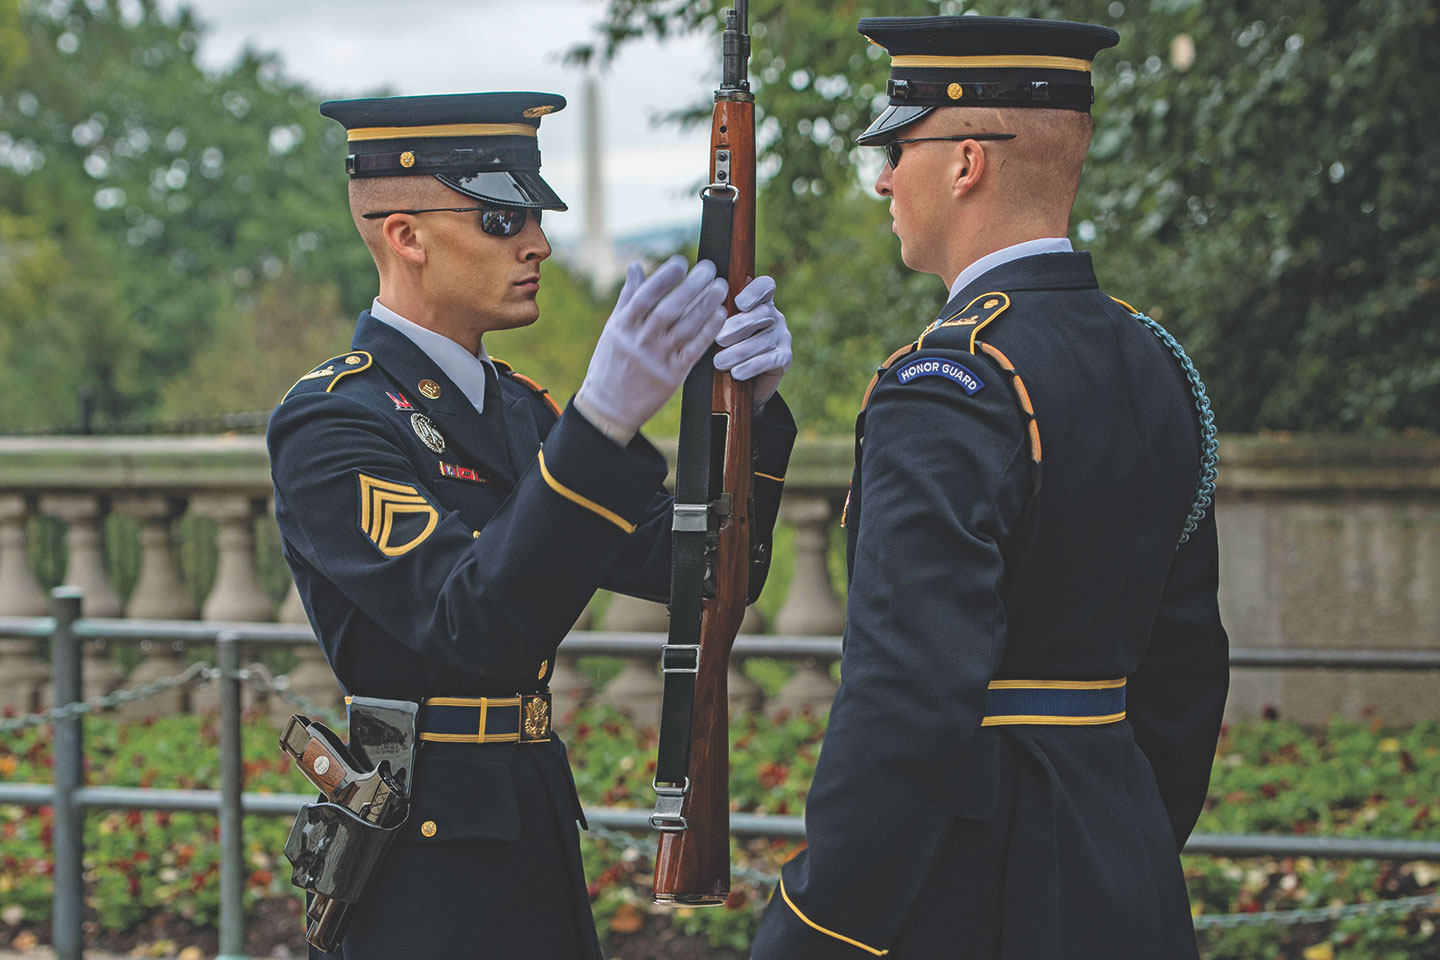 Tomb-of-the-Unknown-Soldier-6